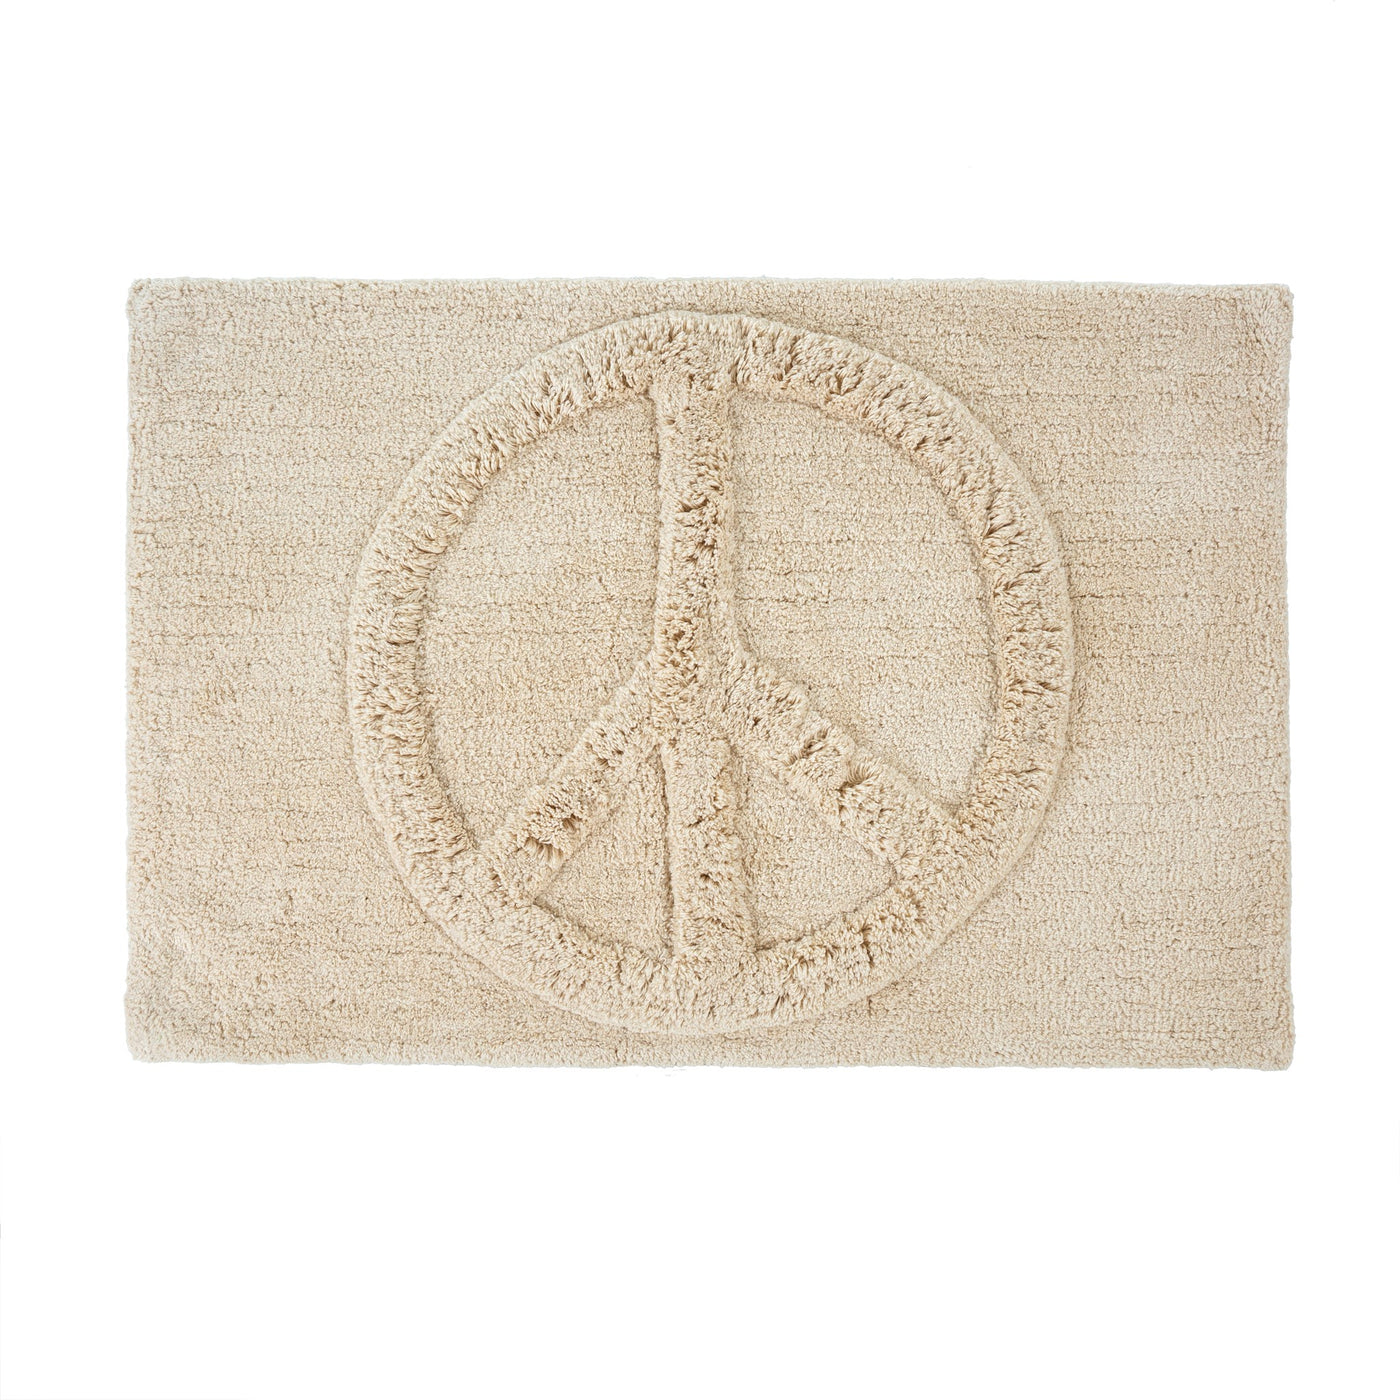 Indaba Trading Peace Bath Mat Rose City Goods Cute Bath Mat Bathroom Accessories Ethically Made Home Goods Sustainably Sourced Housewares Machine Washable Bath Mat